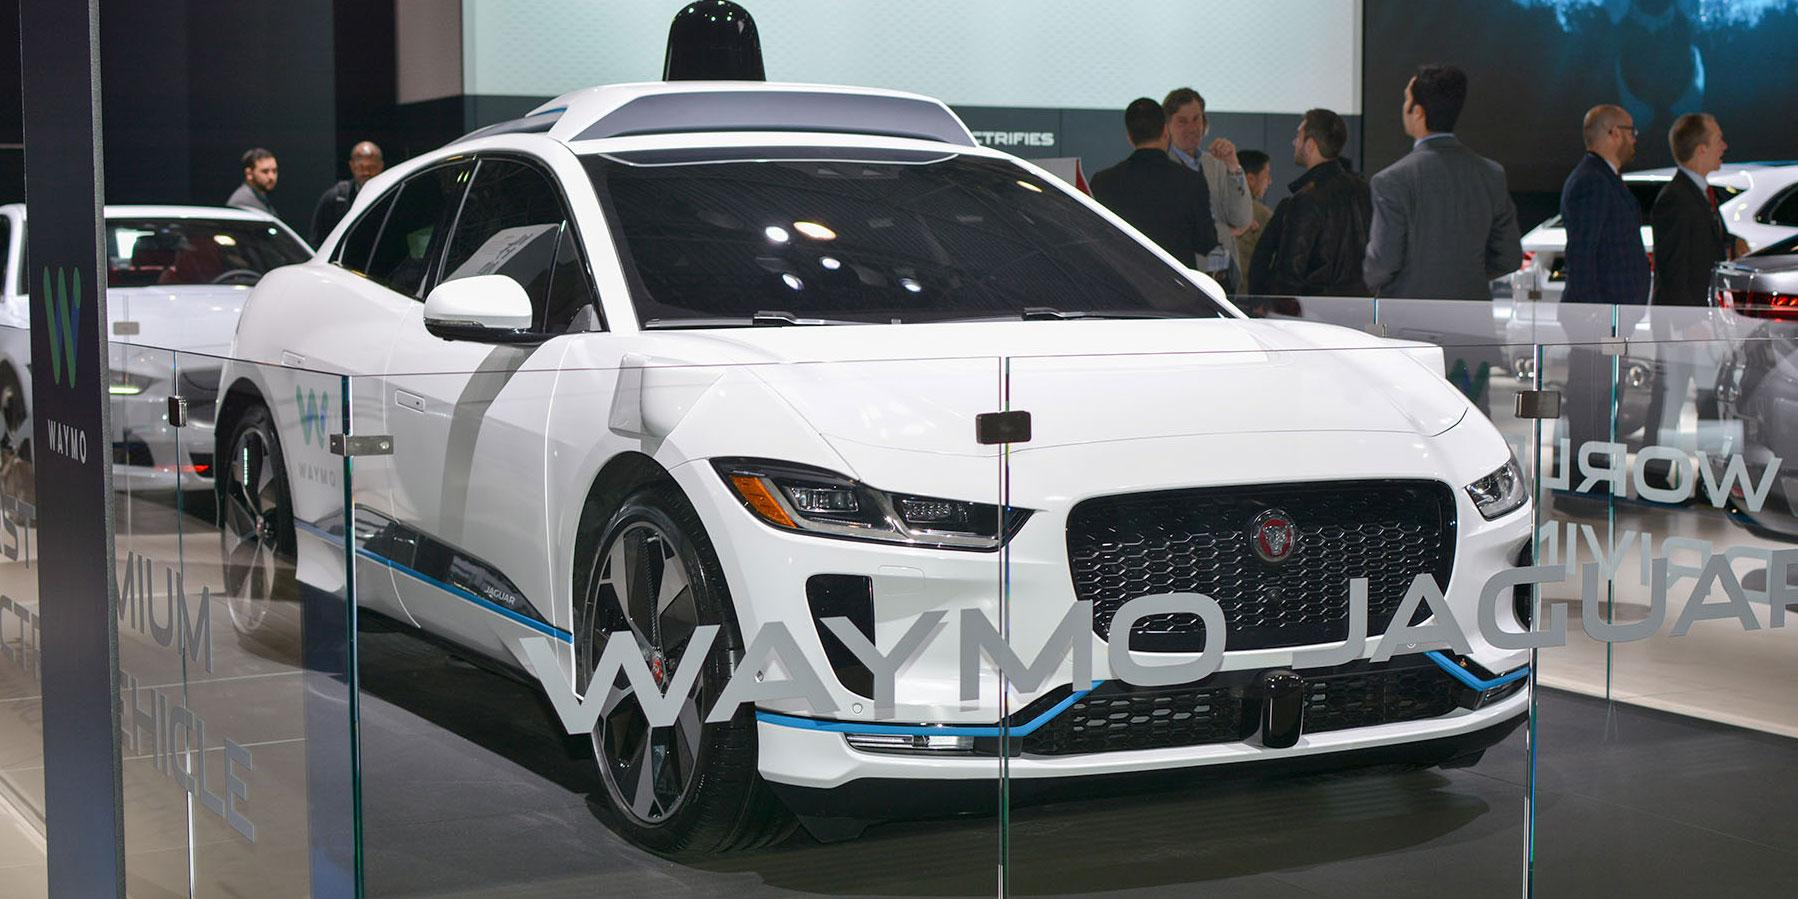 2019 Jaguar I-Pace  Photo: Ian Whelan